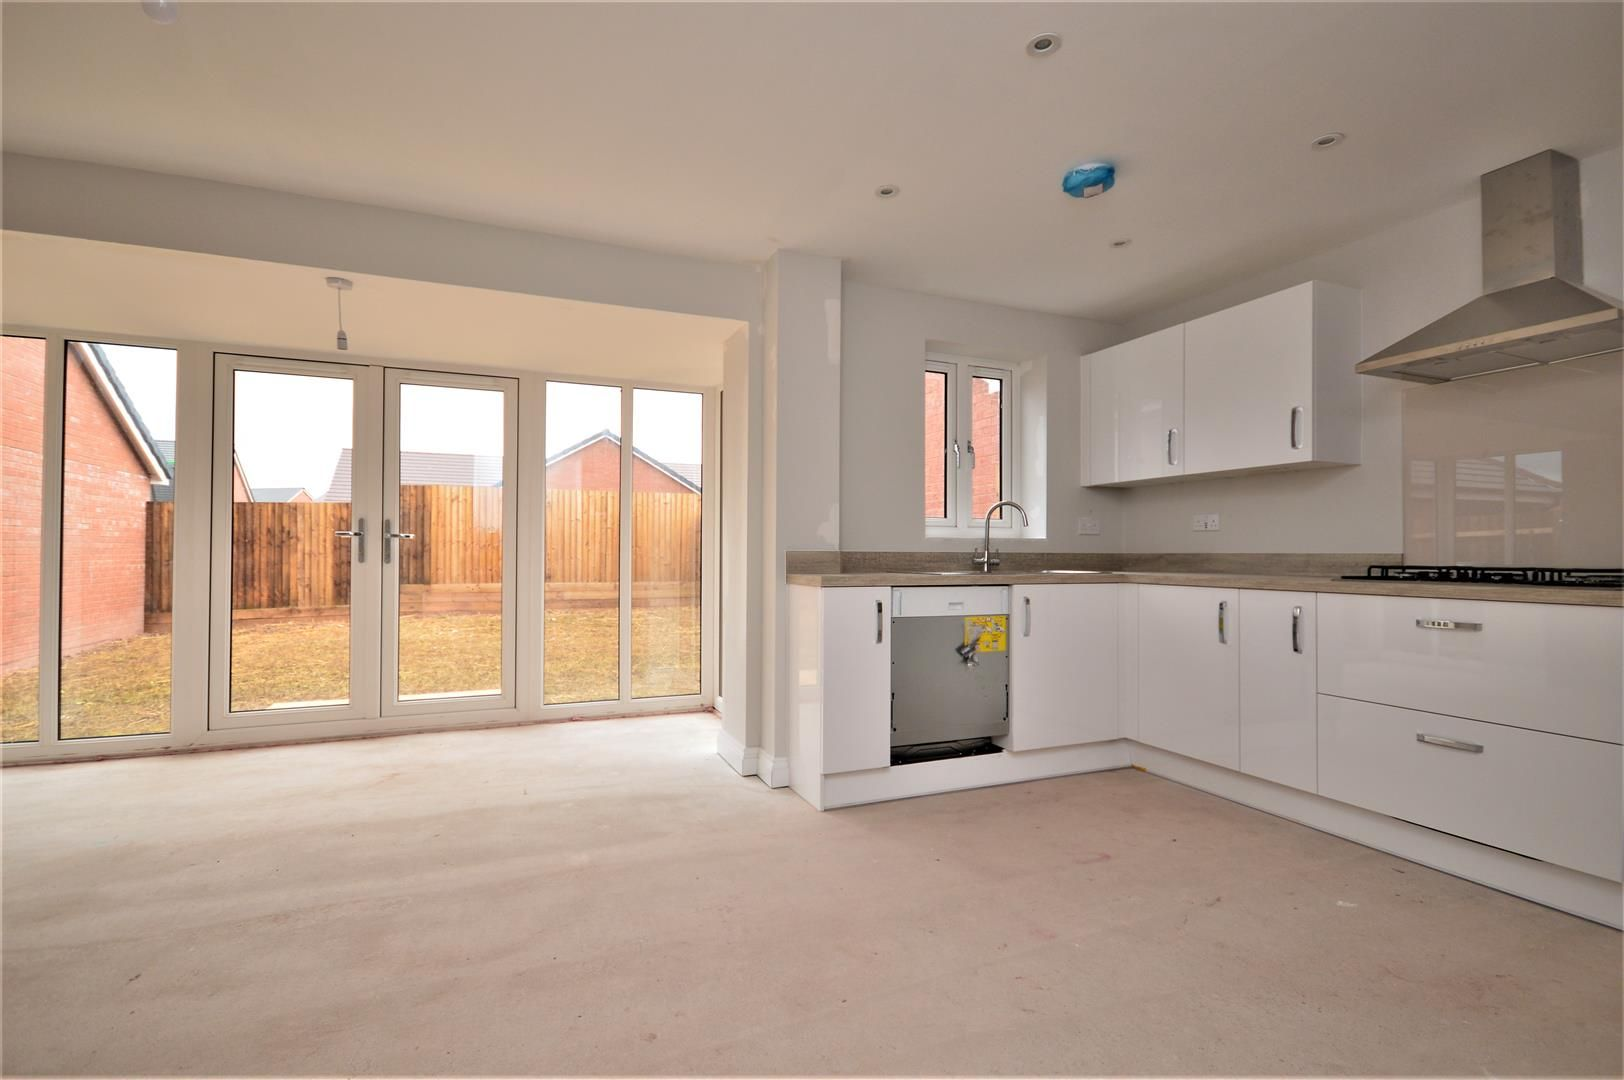 4 bed detached for sale in Kingstone  - Property Image 14